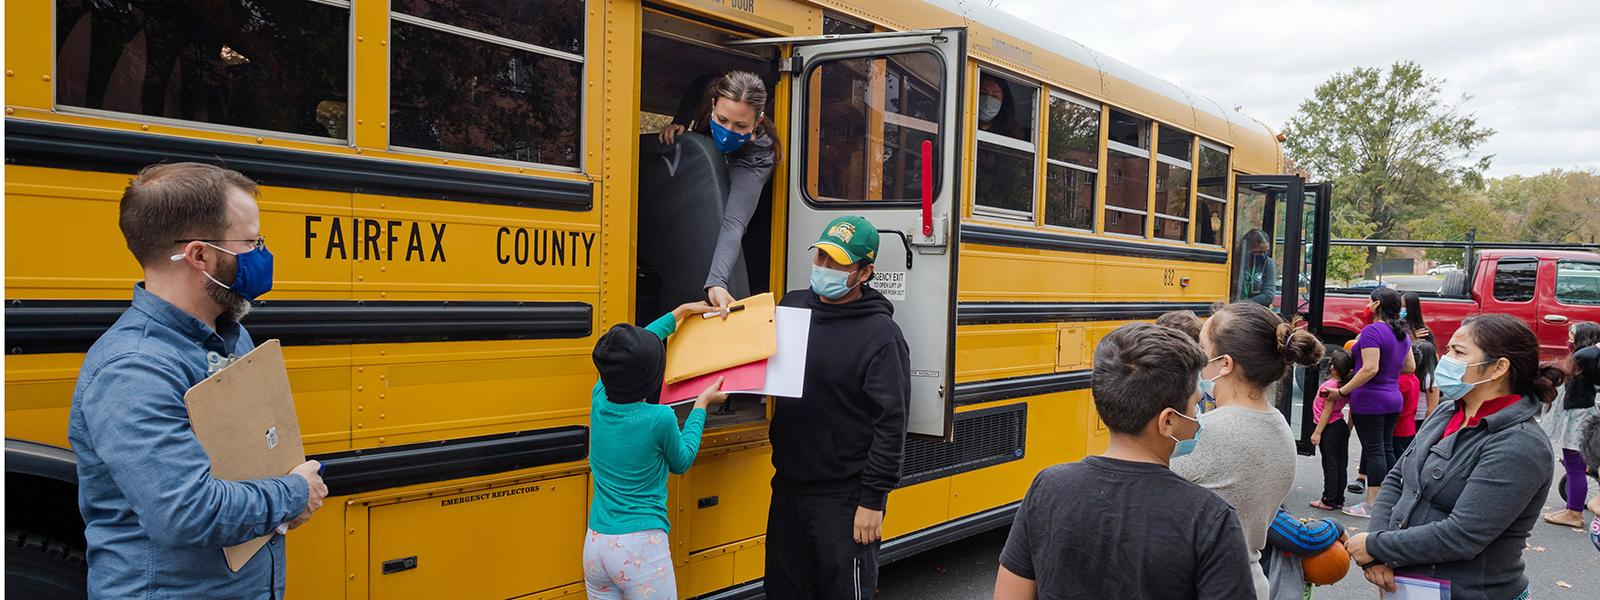 Woodburn Elementary School students receive books, materials, and pumpkins during a bus drop in their neighborhood.